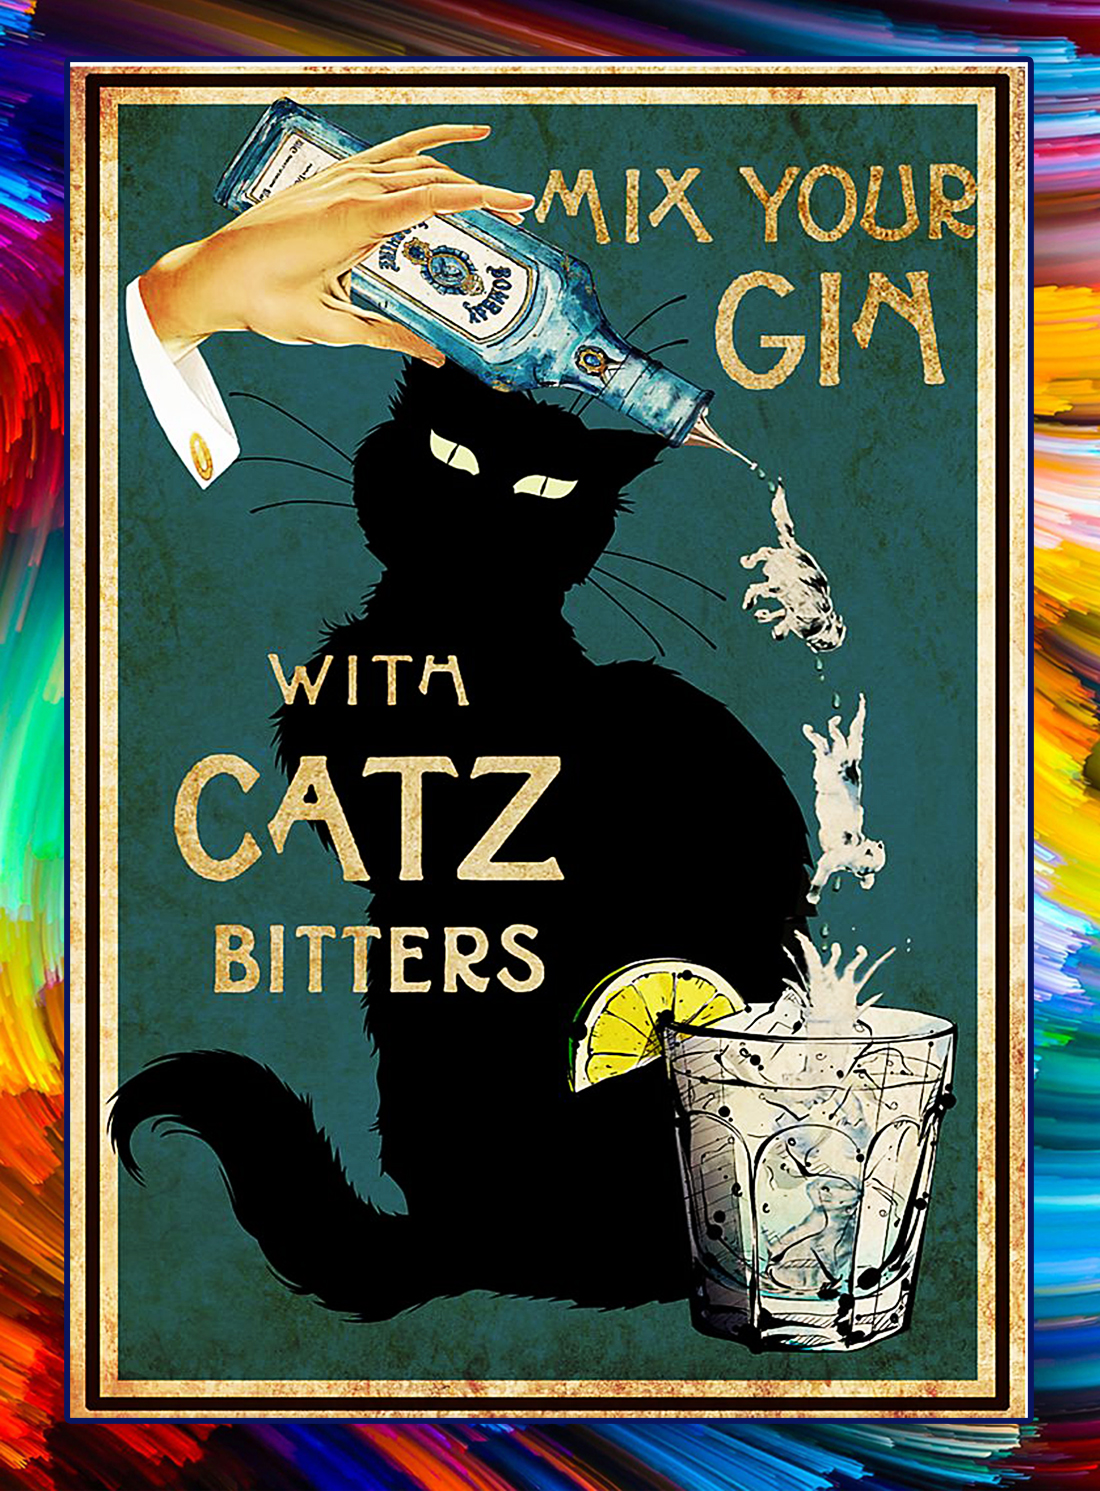 Cat Mix your gin with catz bitter poster